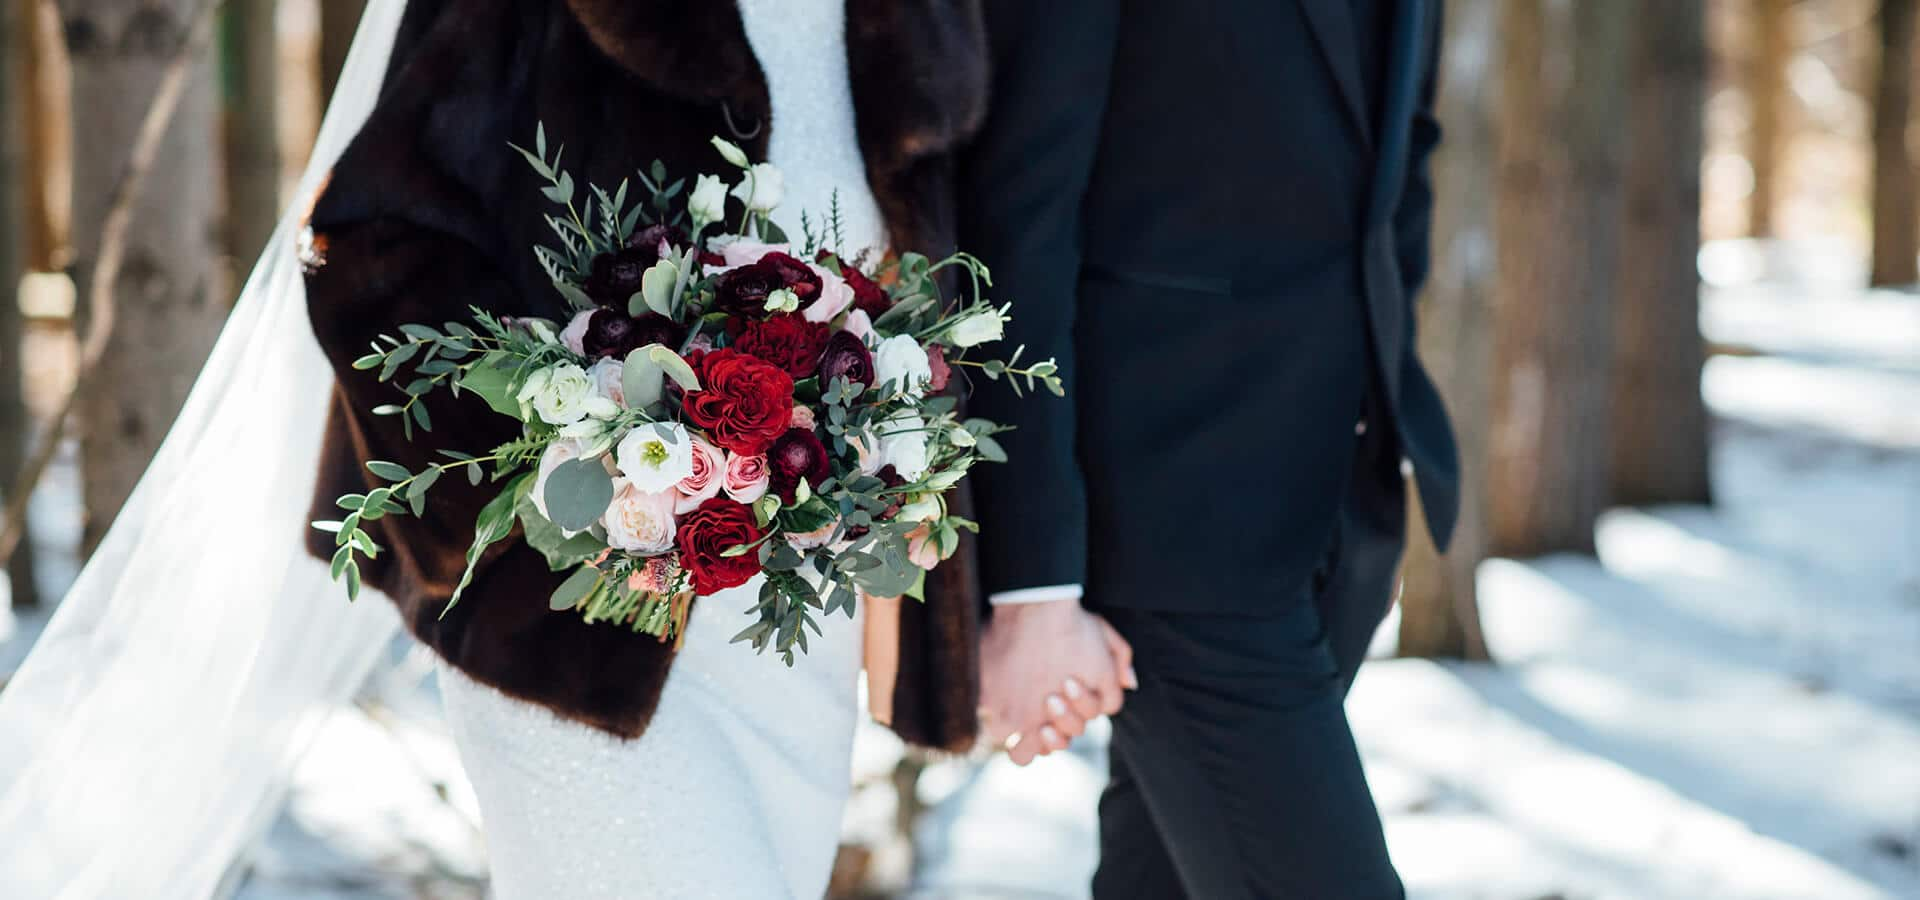 Hero image for Susan and Robert's Elegant Winter Wedding at Chateau Le Parc